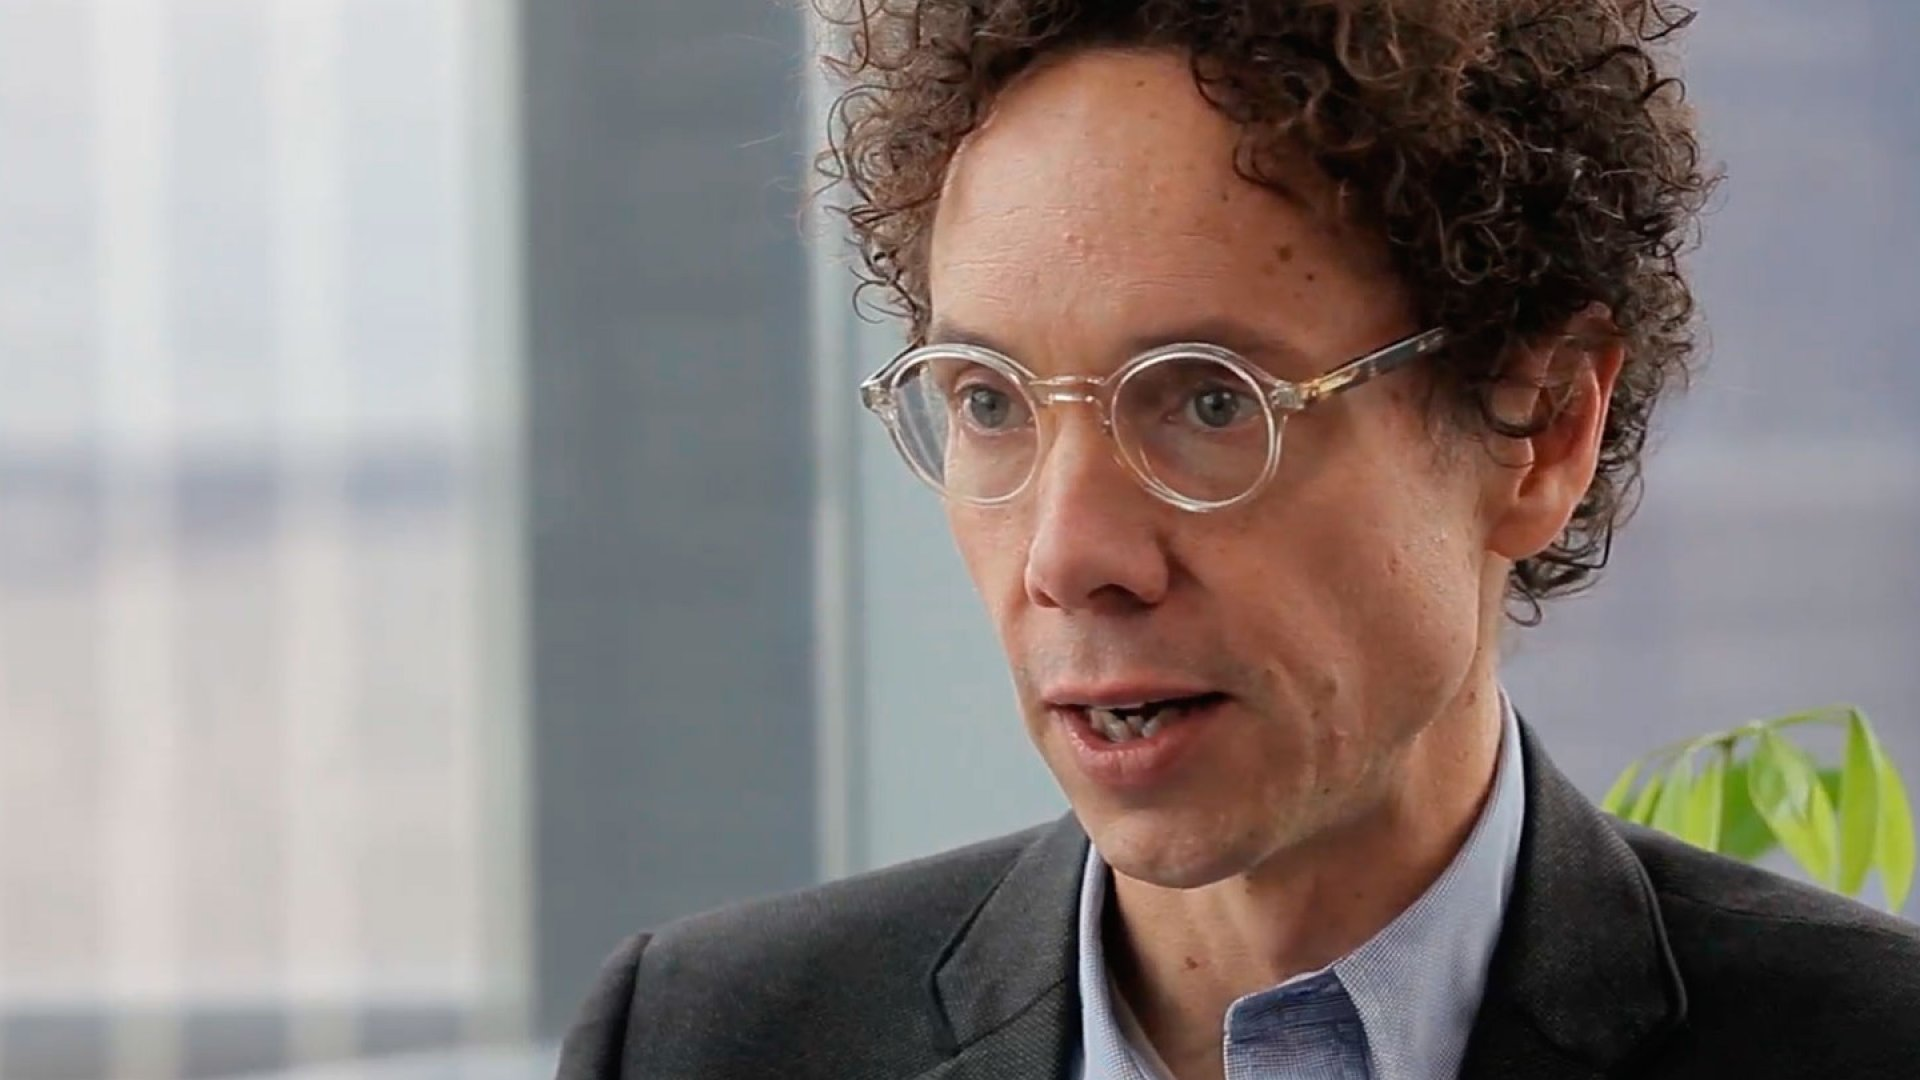 Malcolm Gladwell on Why You Shouldn't Hire for Talent